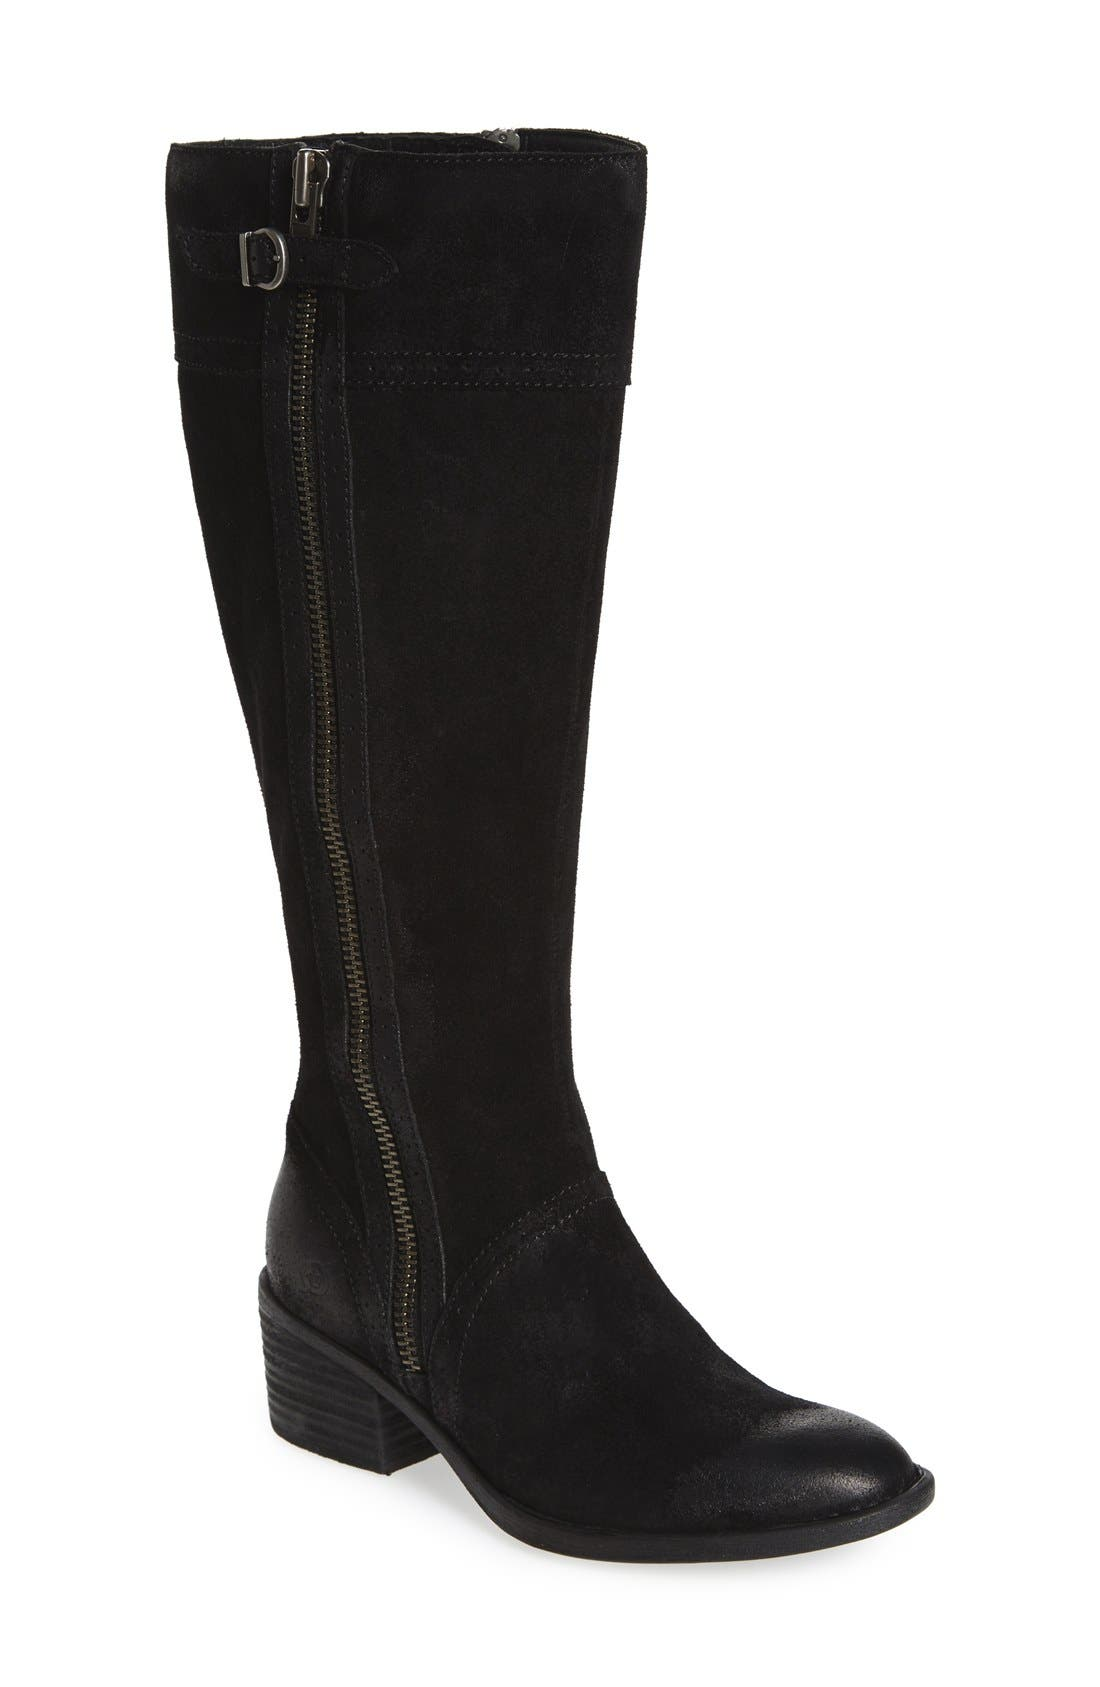 Alternate Image 1 Selected - Børn Poly Riding Boot (Women)